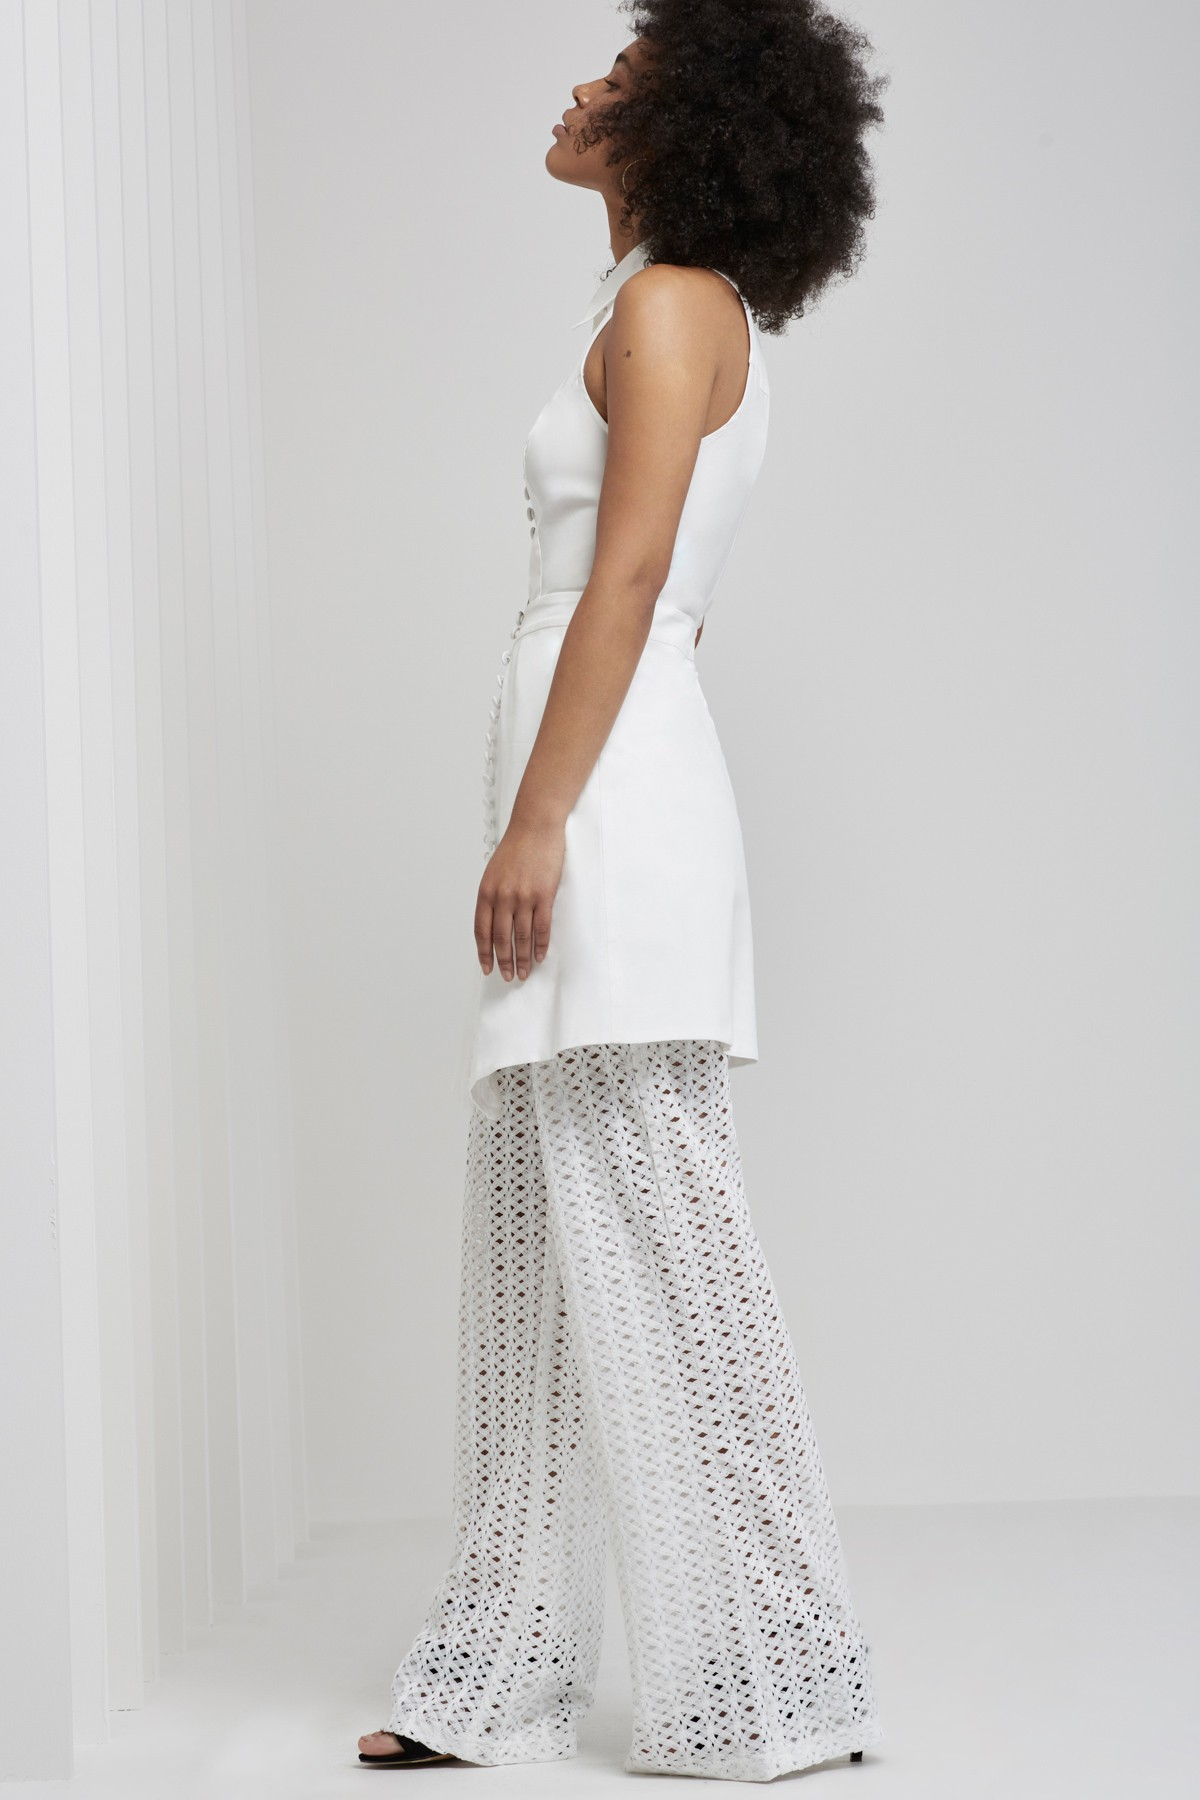 Shop C/MEO COLLECTIVE  Let It Go Short Sleeve Shirting Dress  +  Silver Sounds Pants.